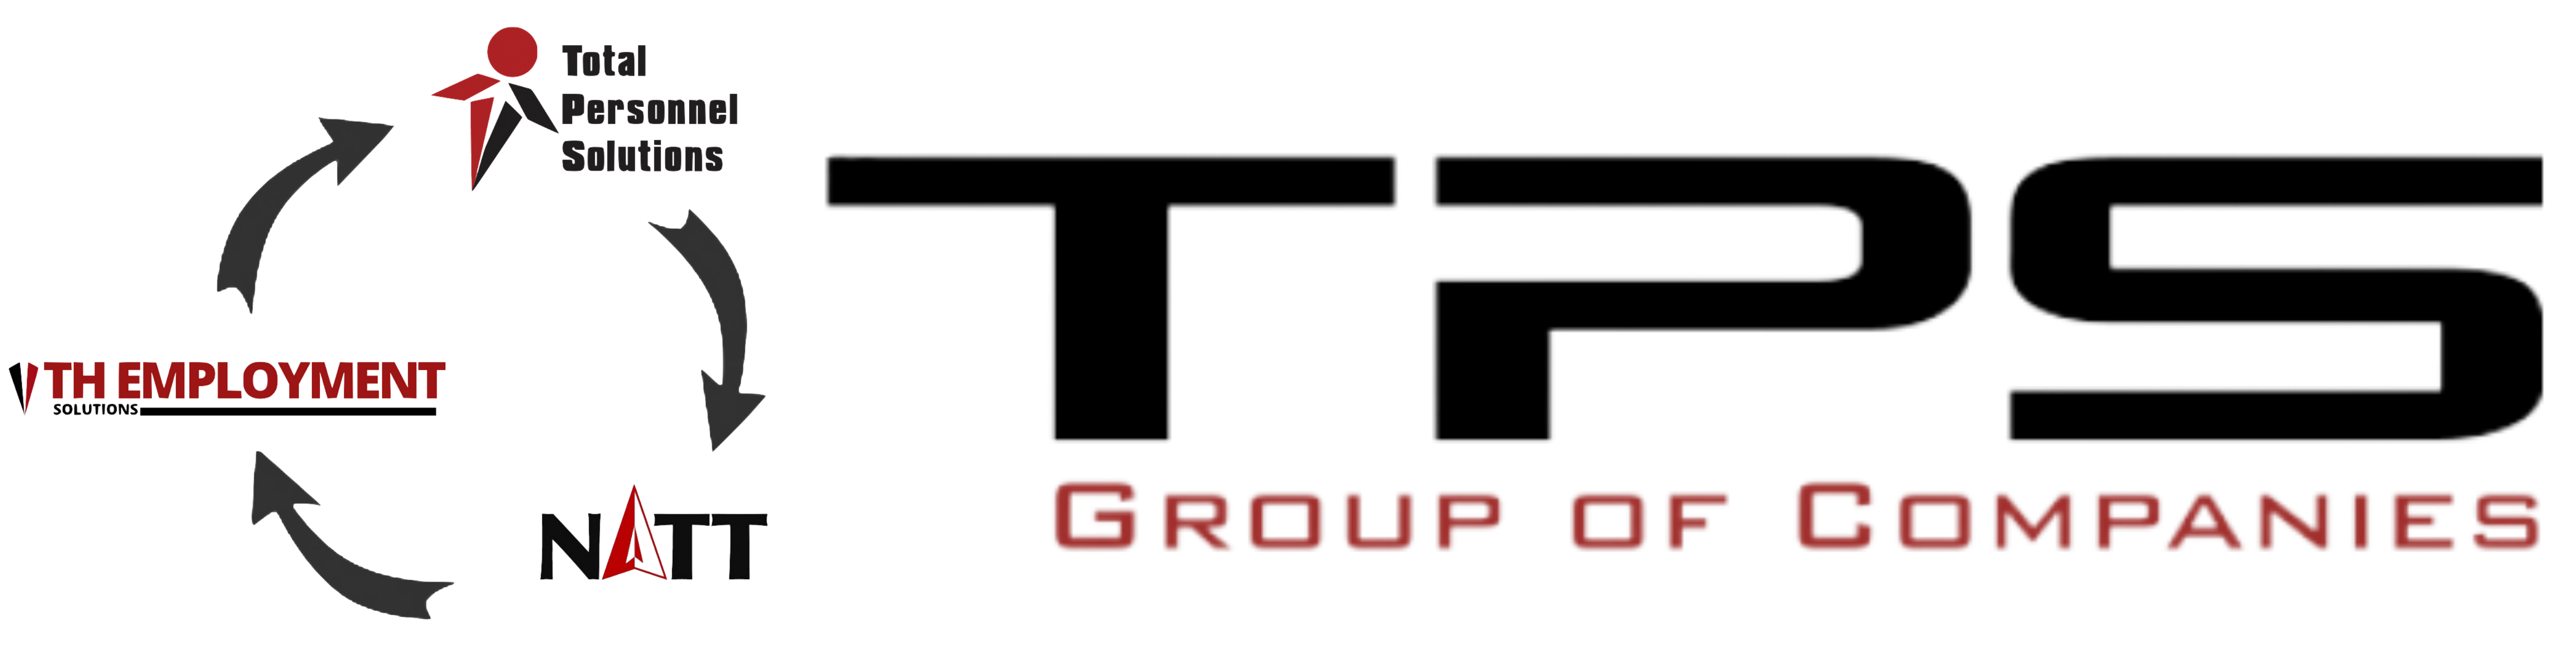 TPS Group of Companies